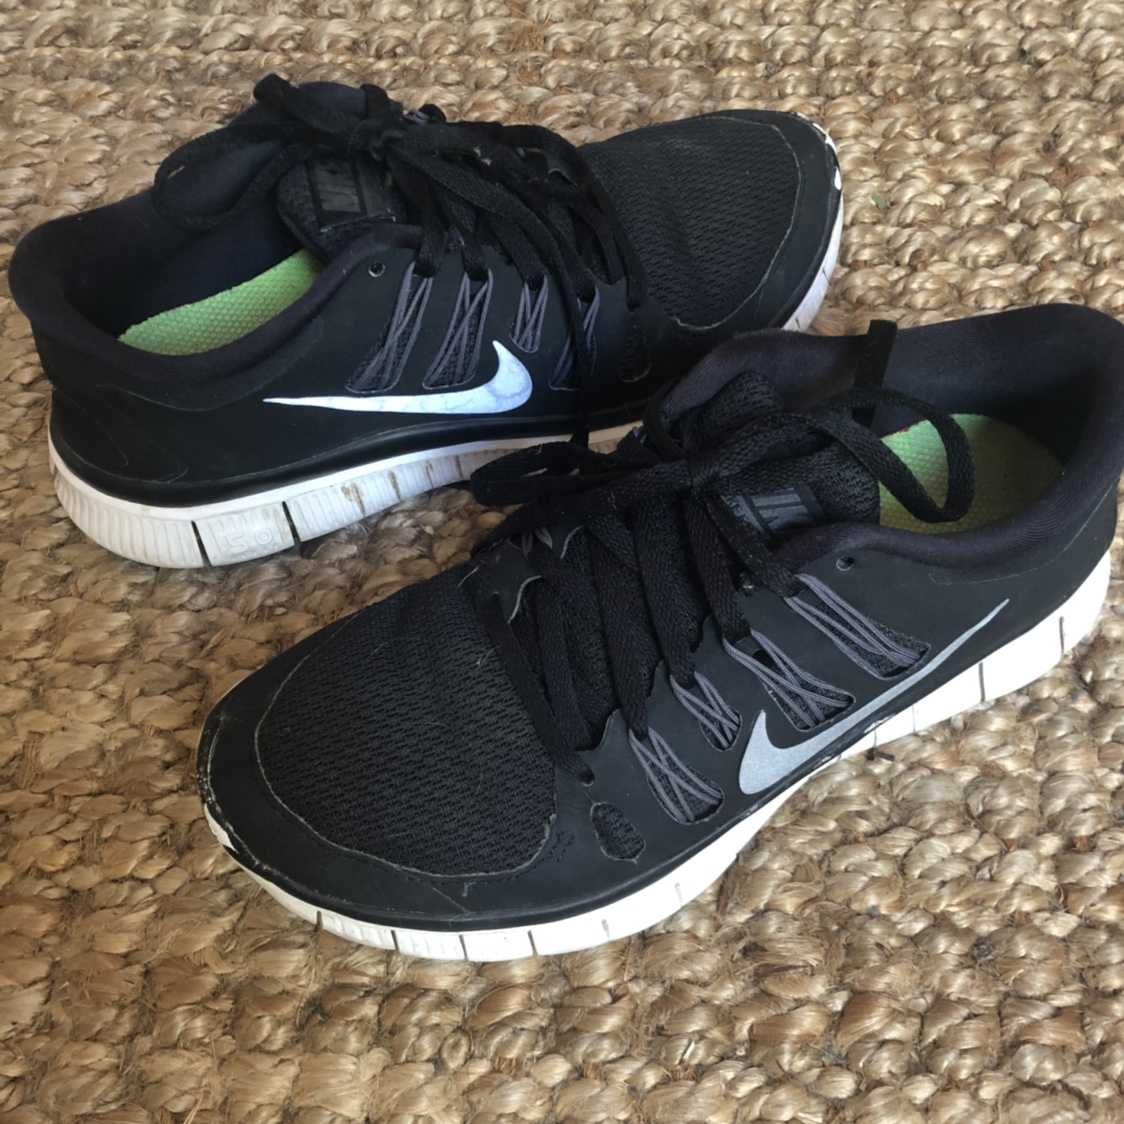 best service 22094 5dba7 Nike free run 5.0 🏃🏻 ♀️ Used conditions. Price ...